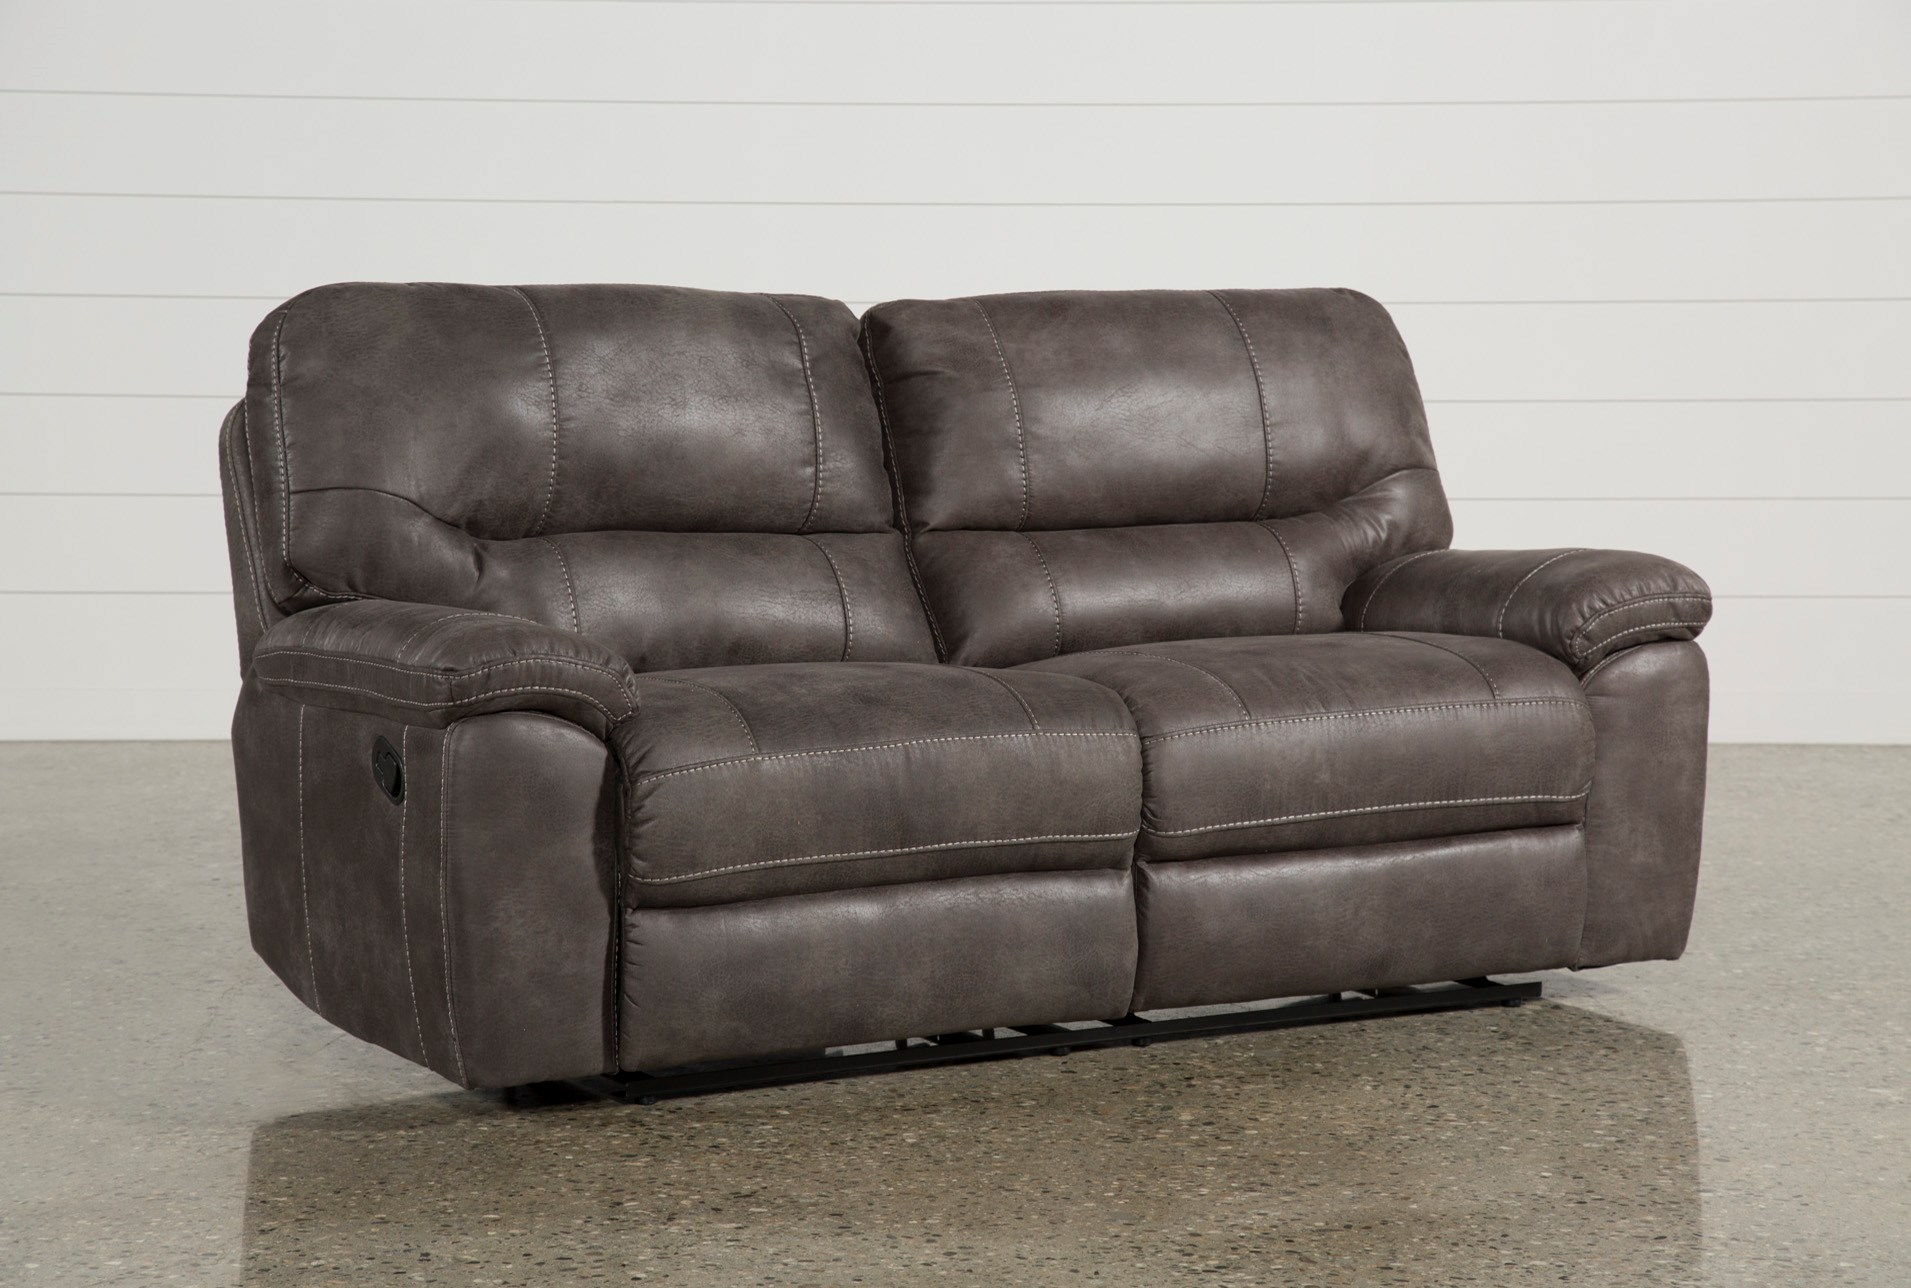 Grey Recliner Sofa Collection New Paolo 2 Seater Recliner